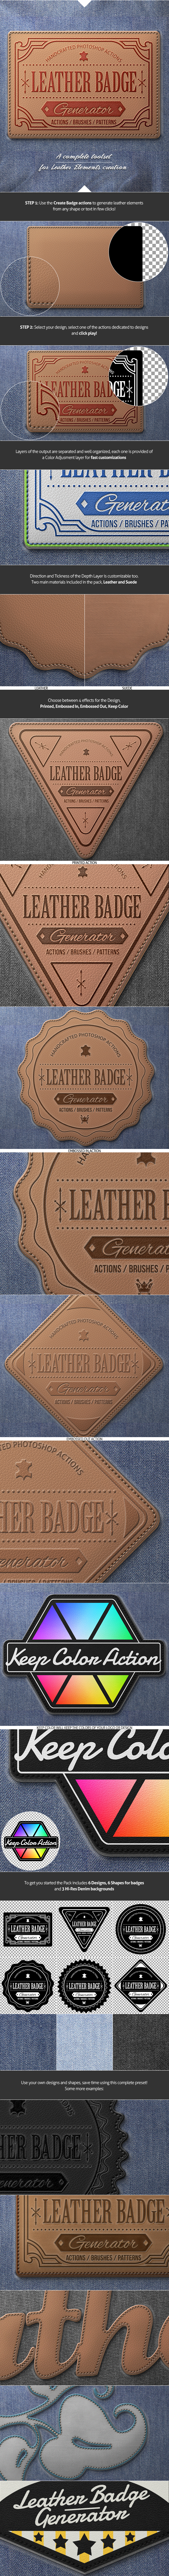 Leather Badge Generator - Photoshop Actions by NuwanP